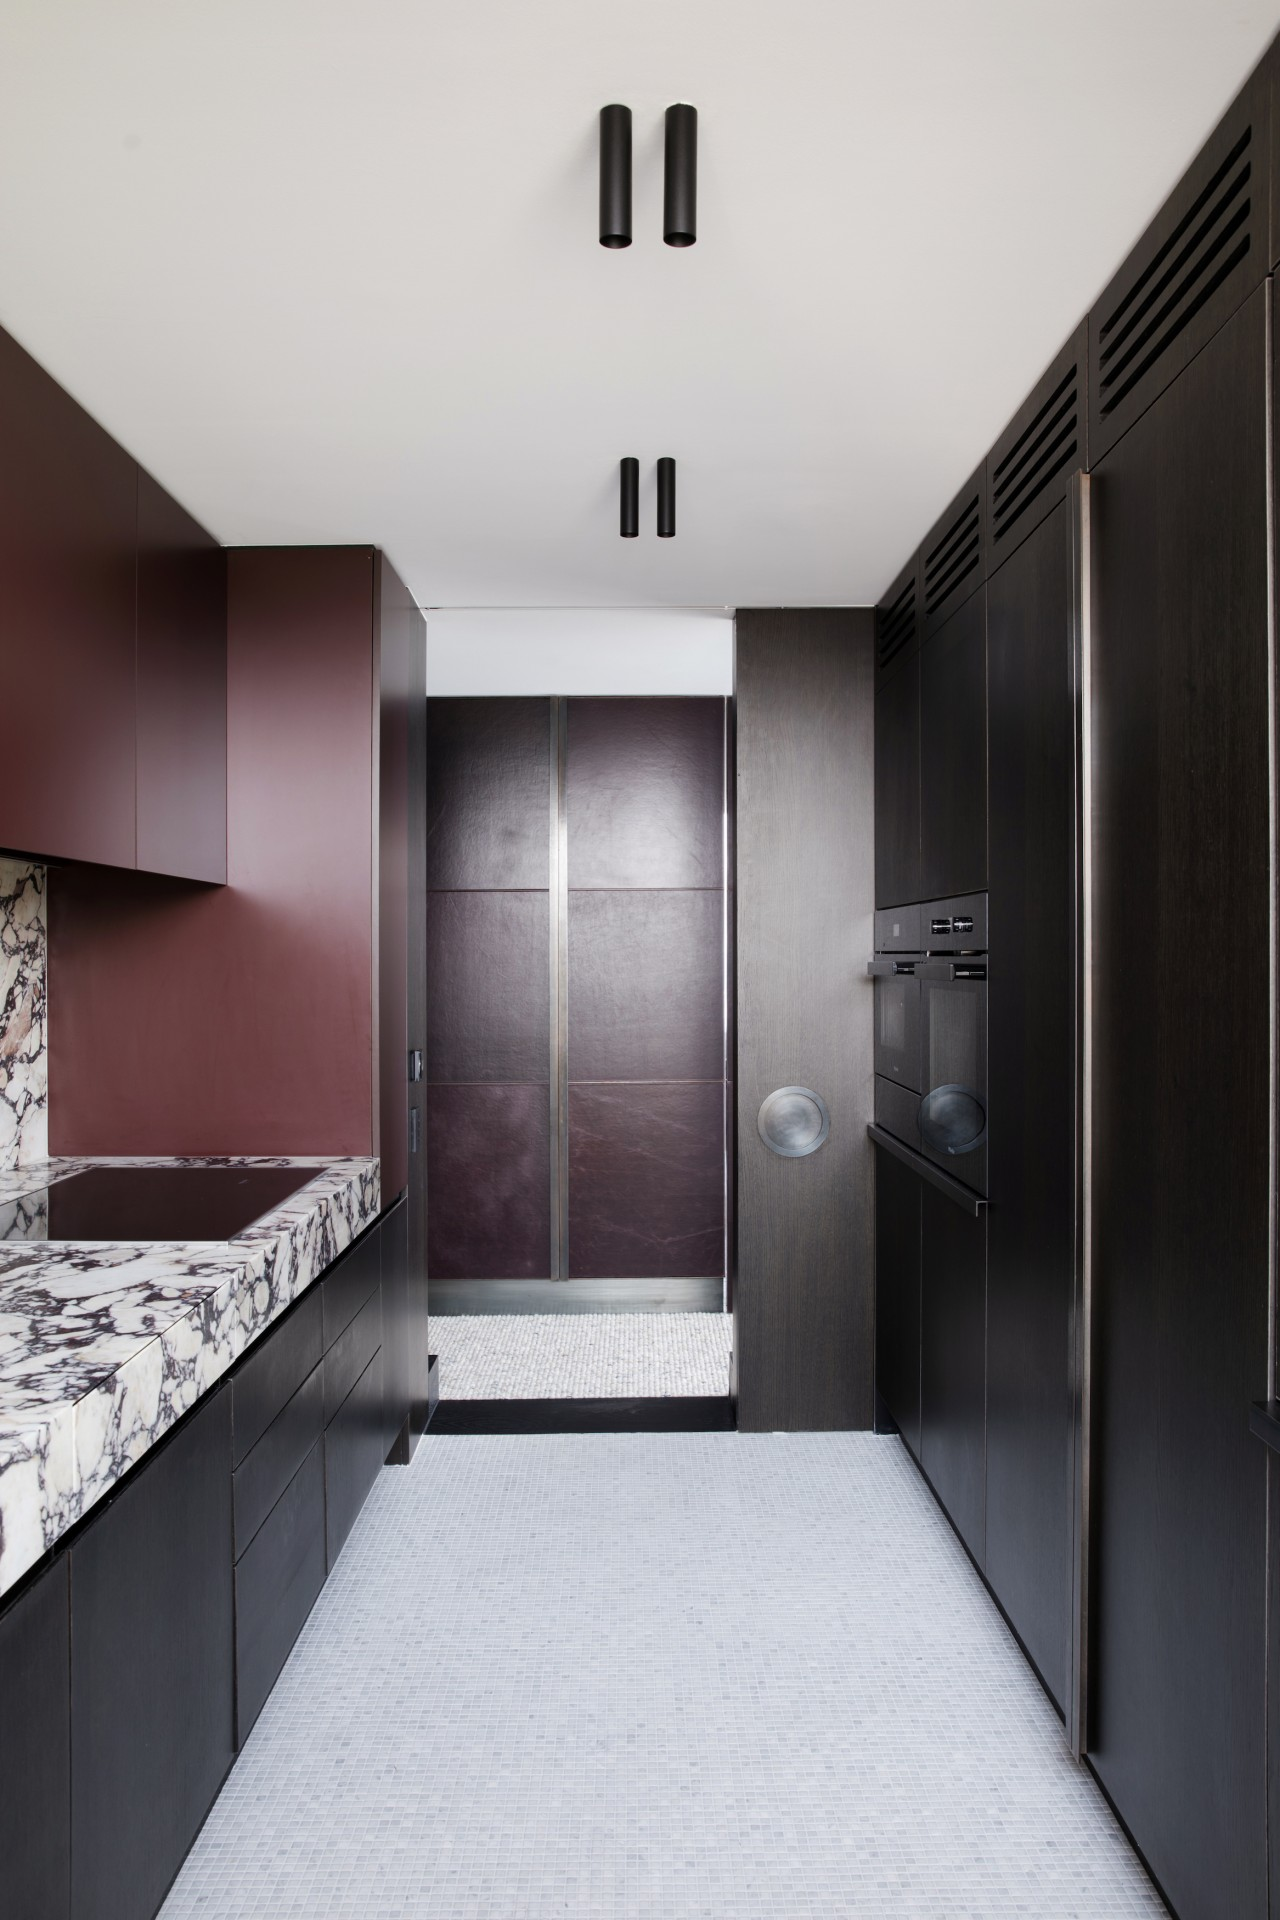 Understated black cabinetry conceals a wealth of functionality.